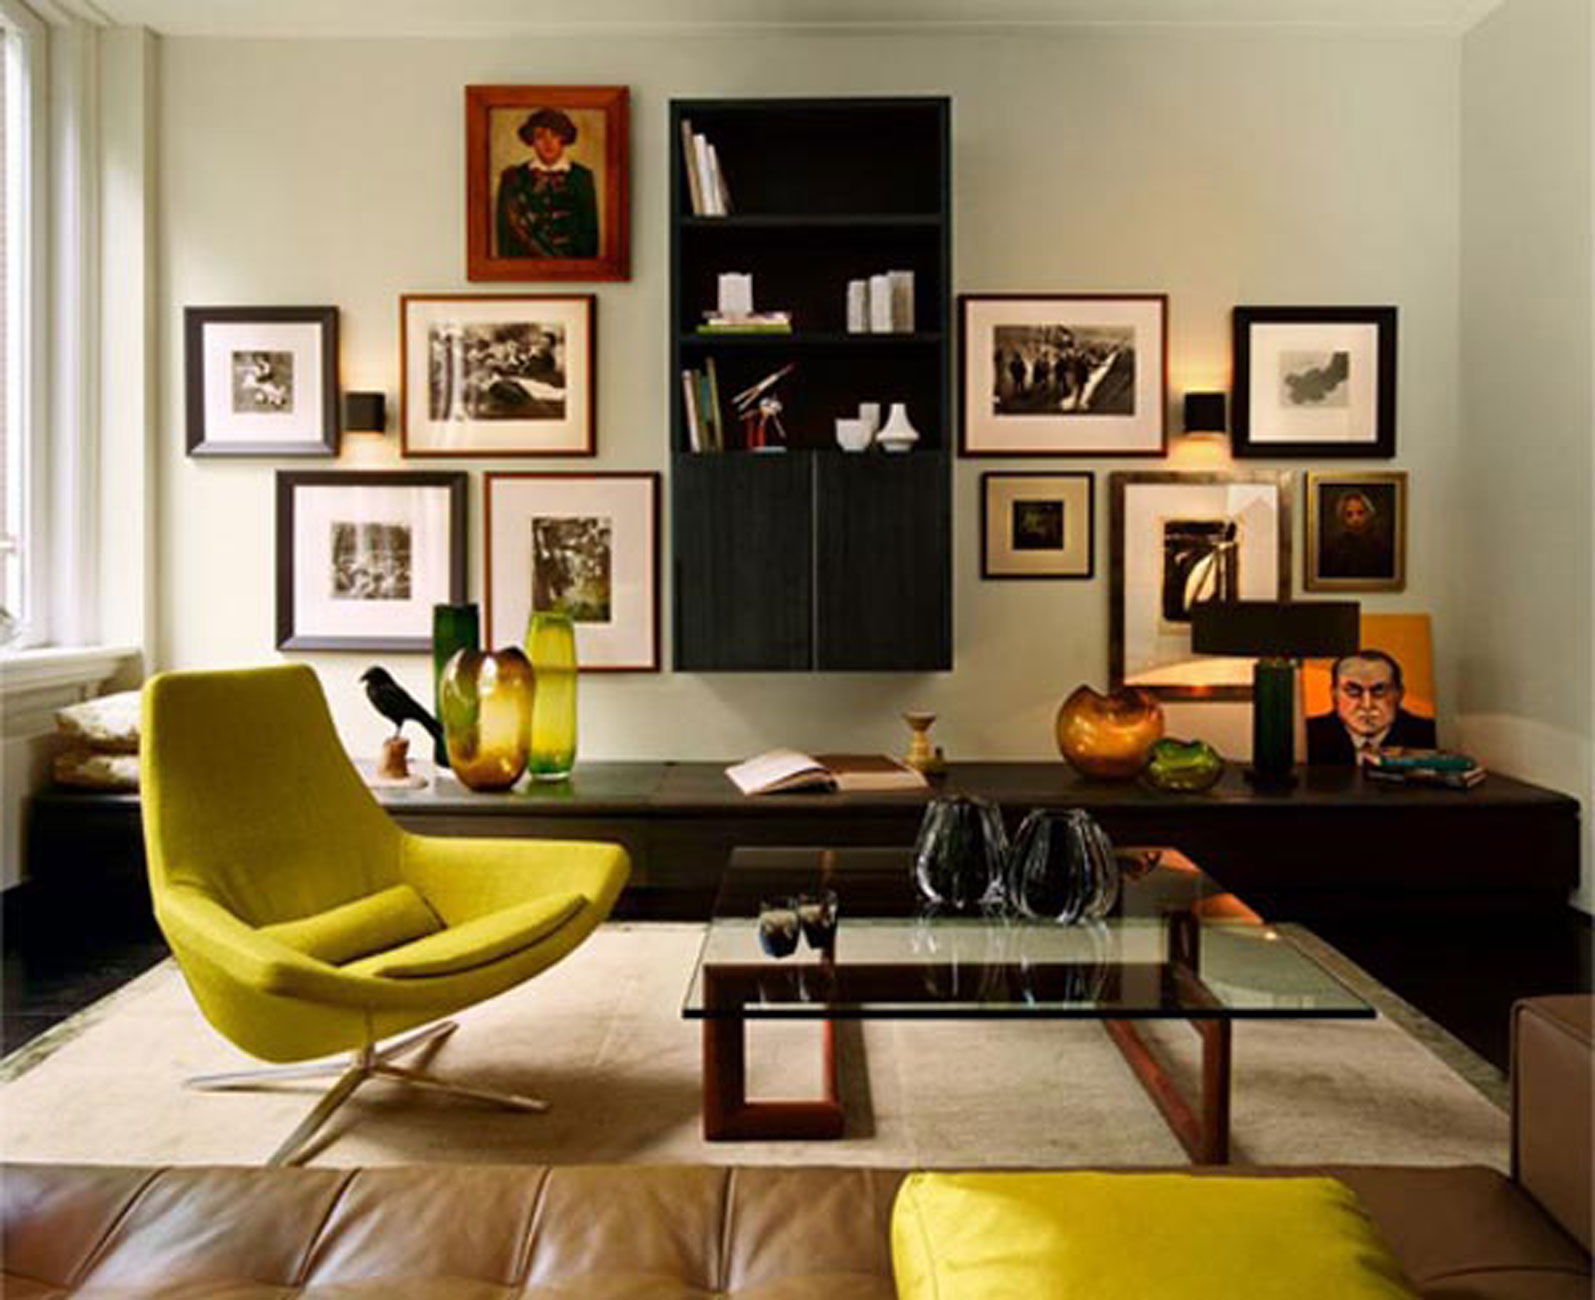 Contemporary Design And Dark Interior In Apartment Ideas By Kate Hume Viahouse Com